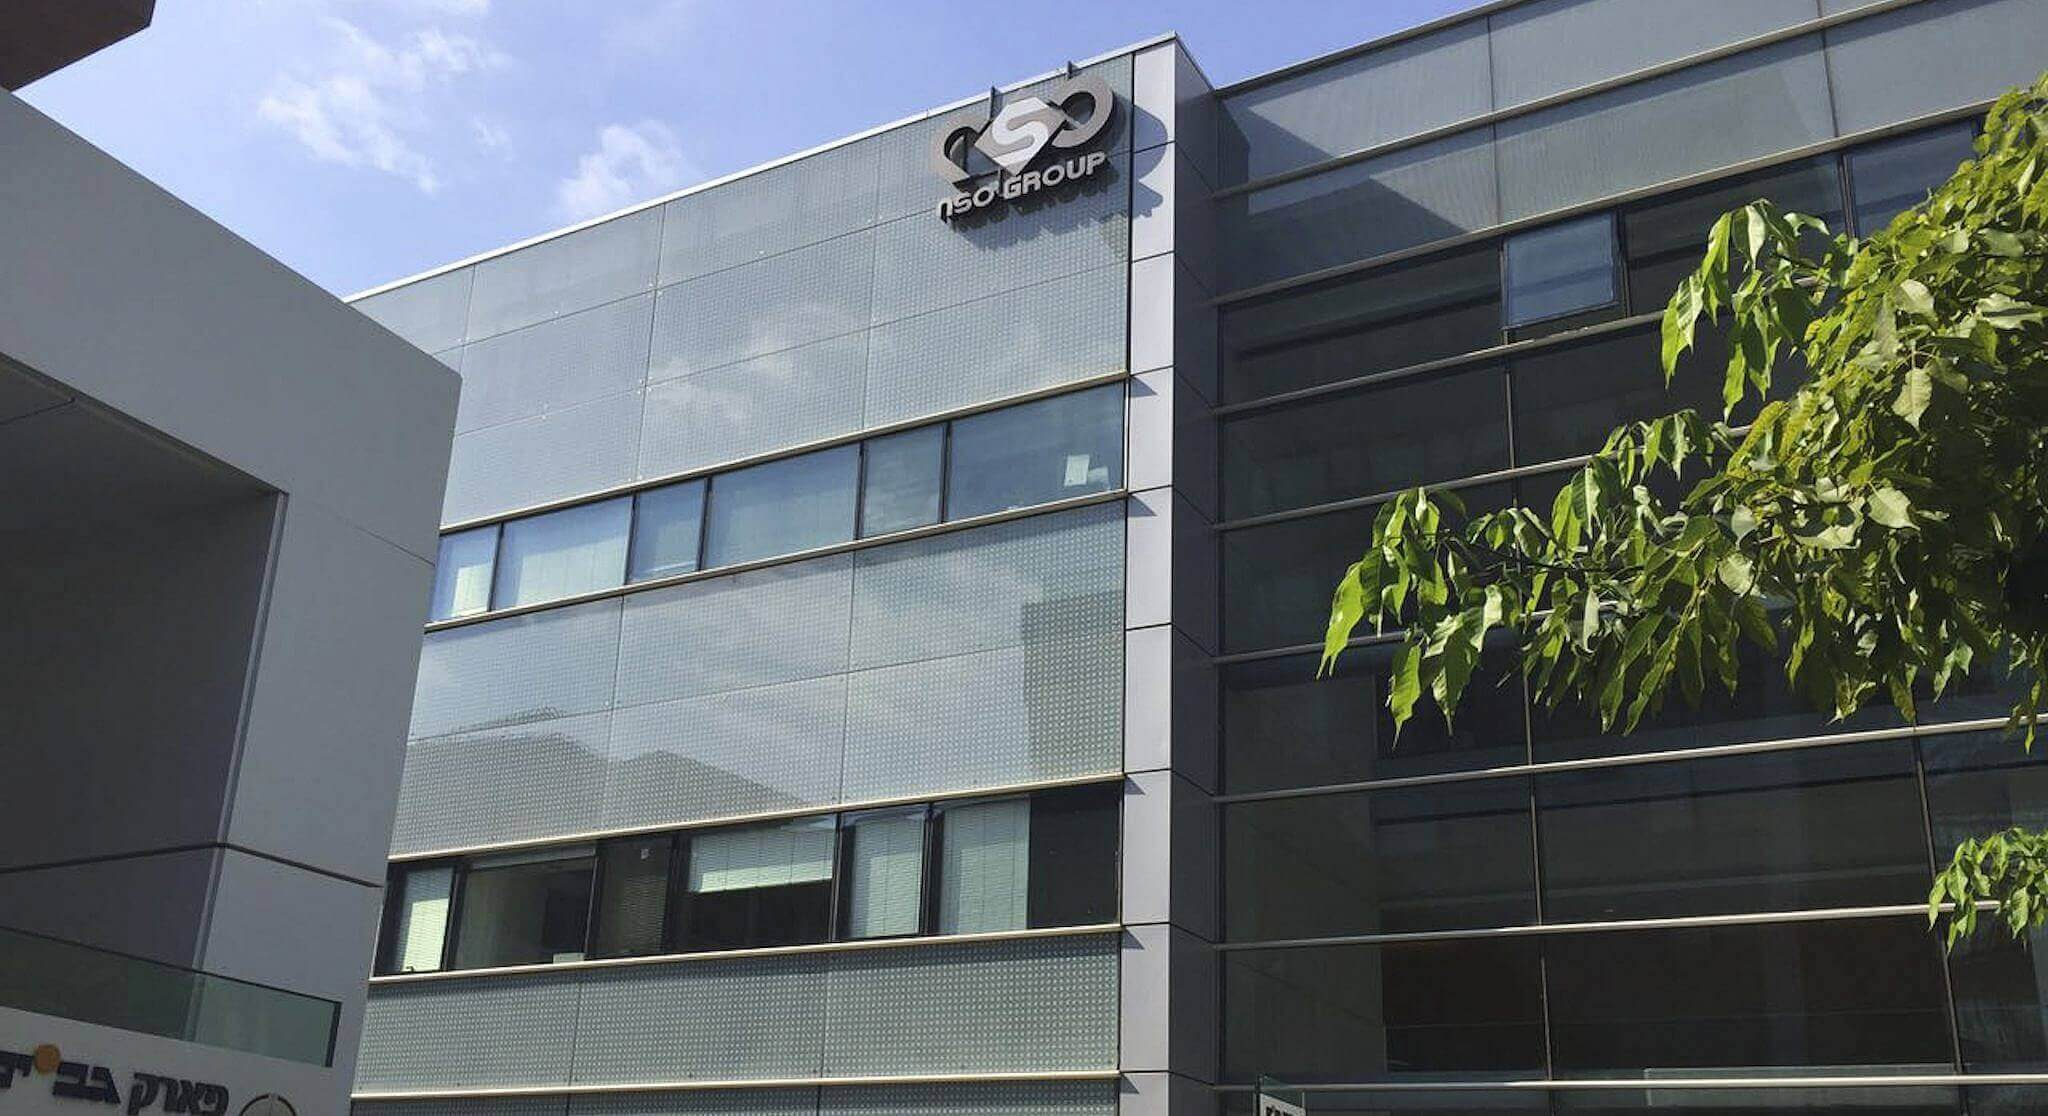 Israeli court rules in favor of NSO Group in legal fight with Amnesty International